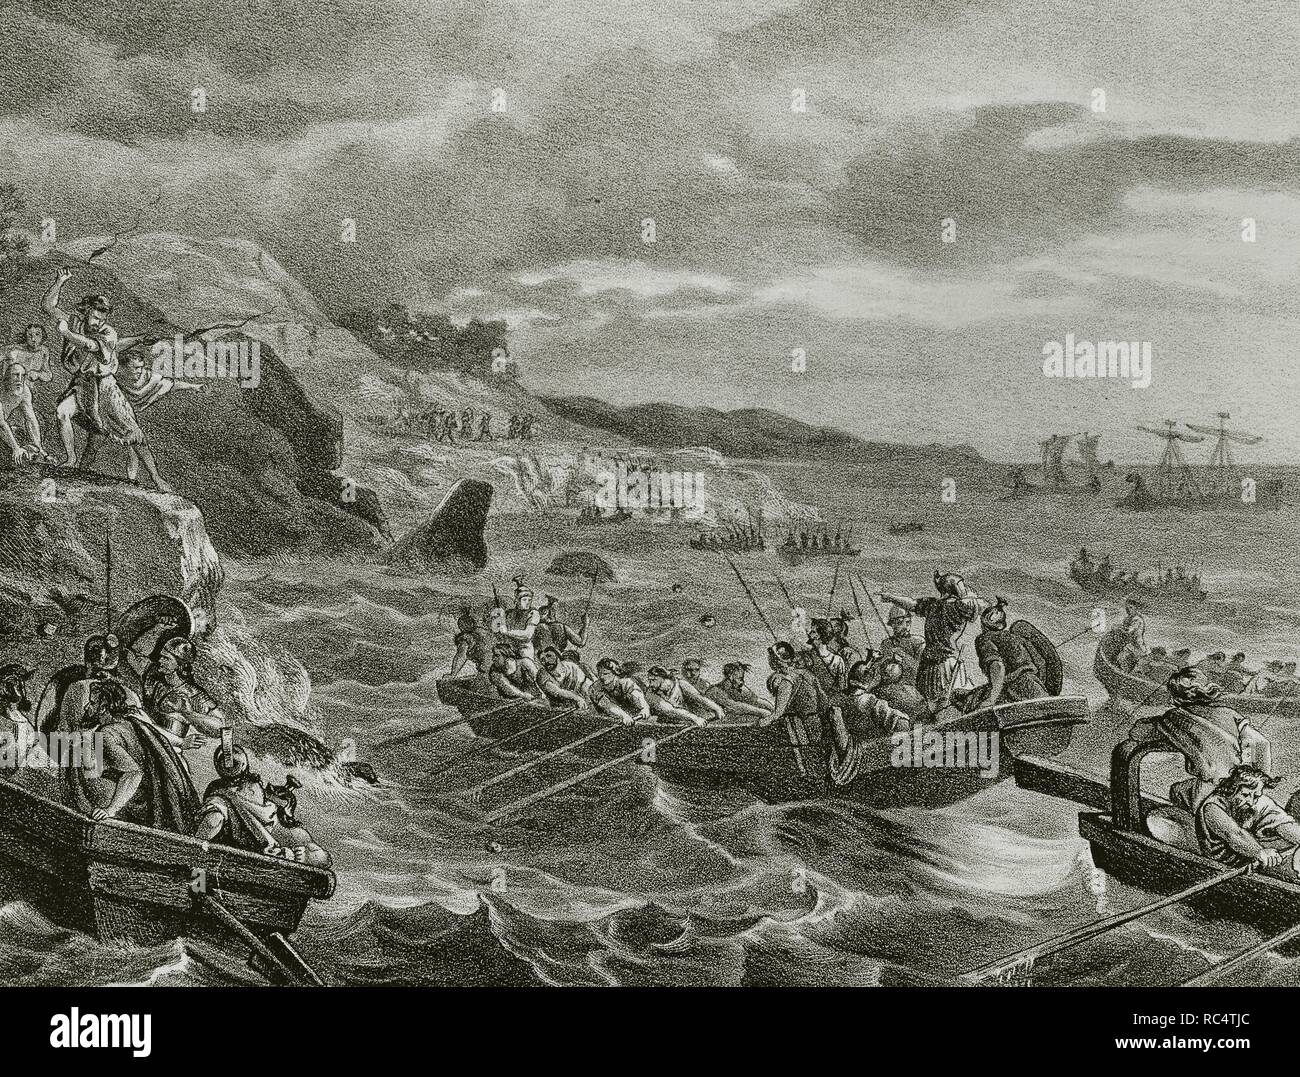 Carthaginian Iberia (575-206 B.C). Balearic Islands. Attack and conquest by the Carthaginians (247-183 B.C.). Engraving, 1871. - Stock Image